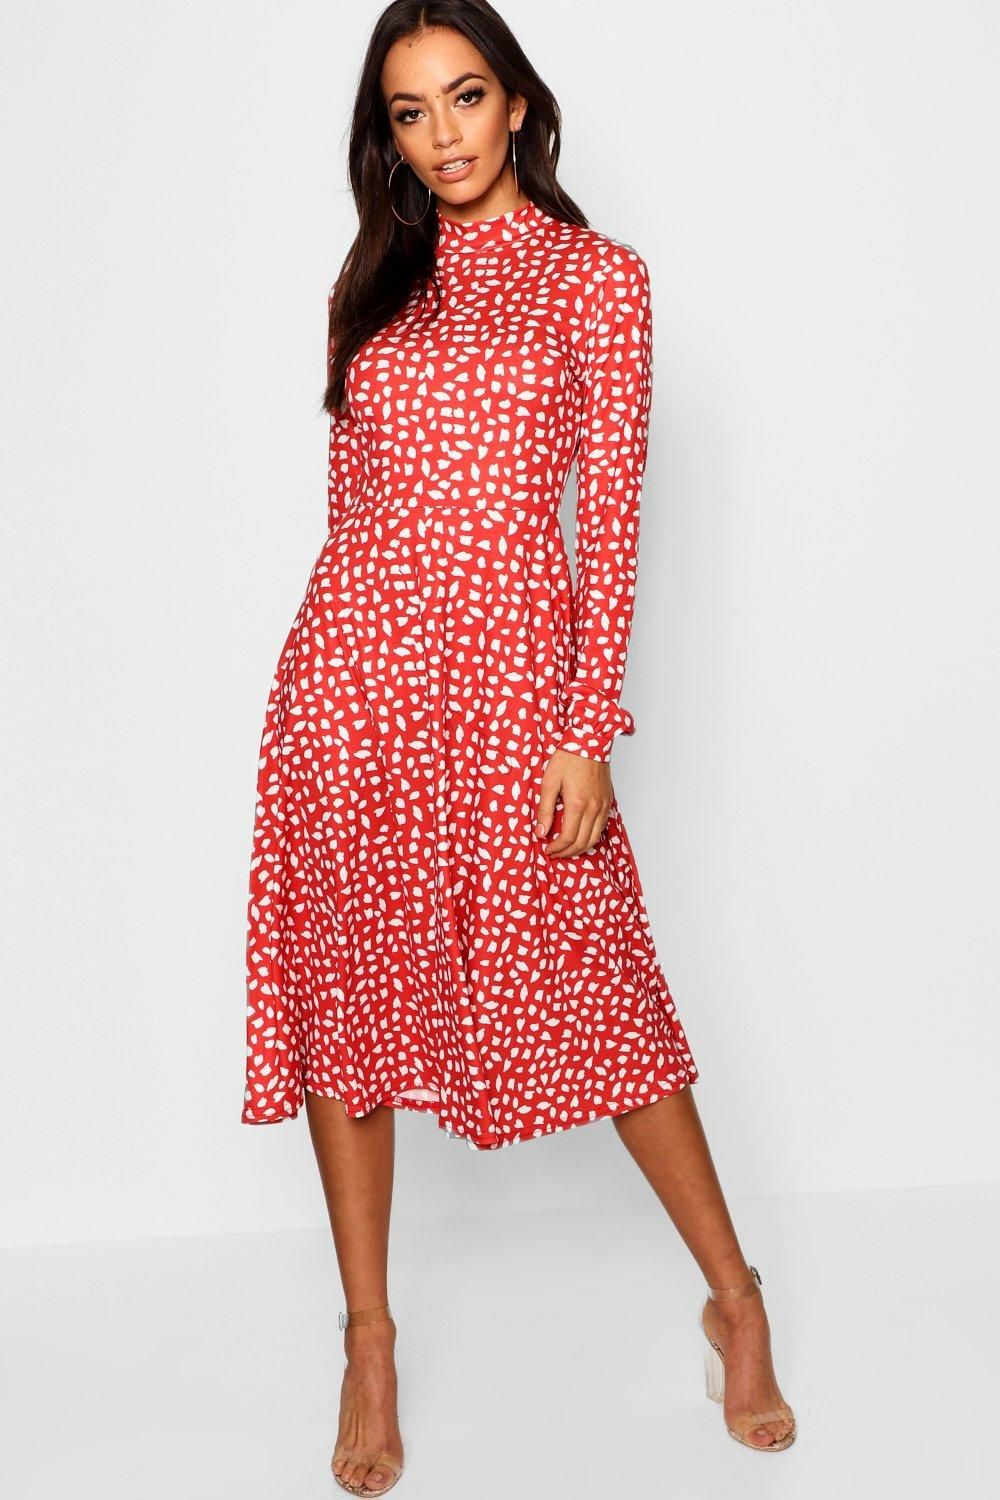 Dresses Are The Most Wanted Wardrobe Item For Day To Night Dressing From Cool Tone Whites To Block Brights We Red Midi Dress Printed Midi Dress Classy Dress [ 1500 x 1000 Pixel ]